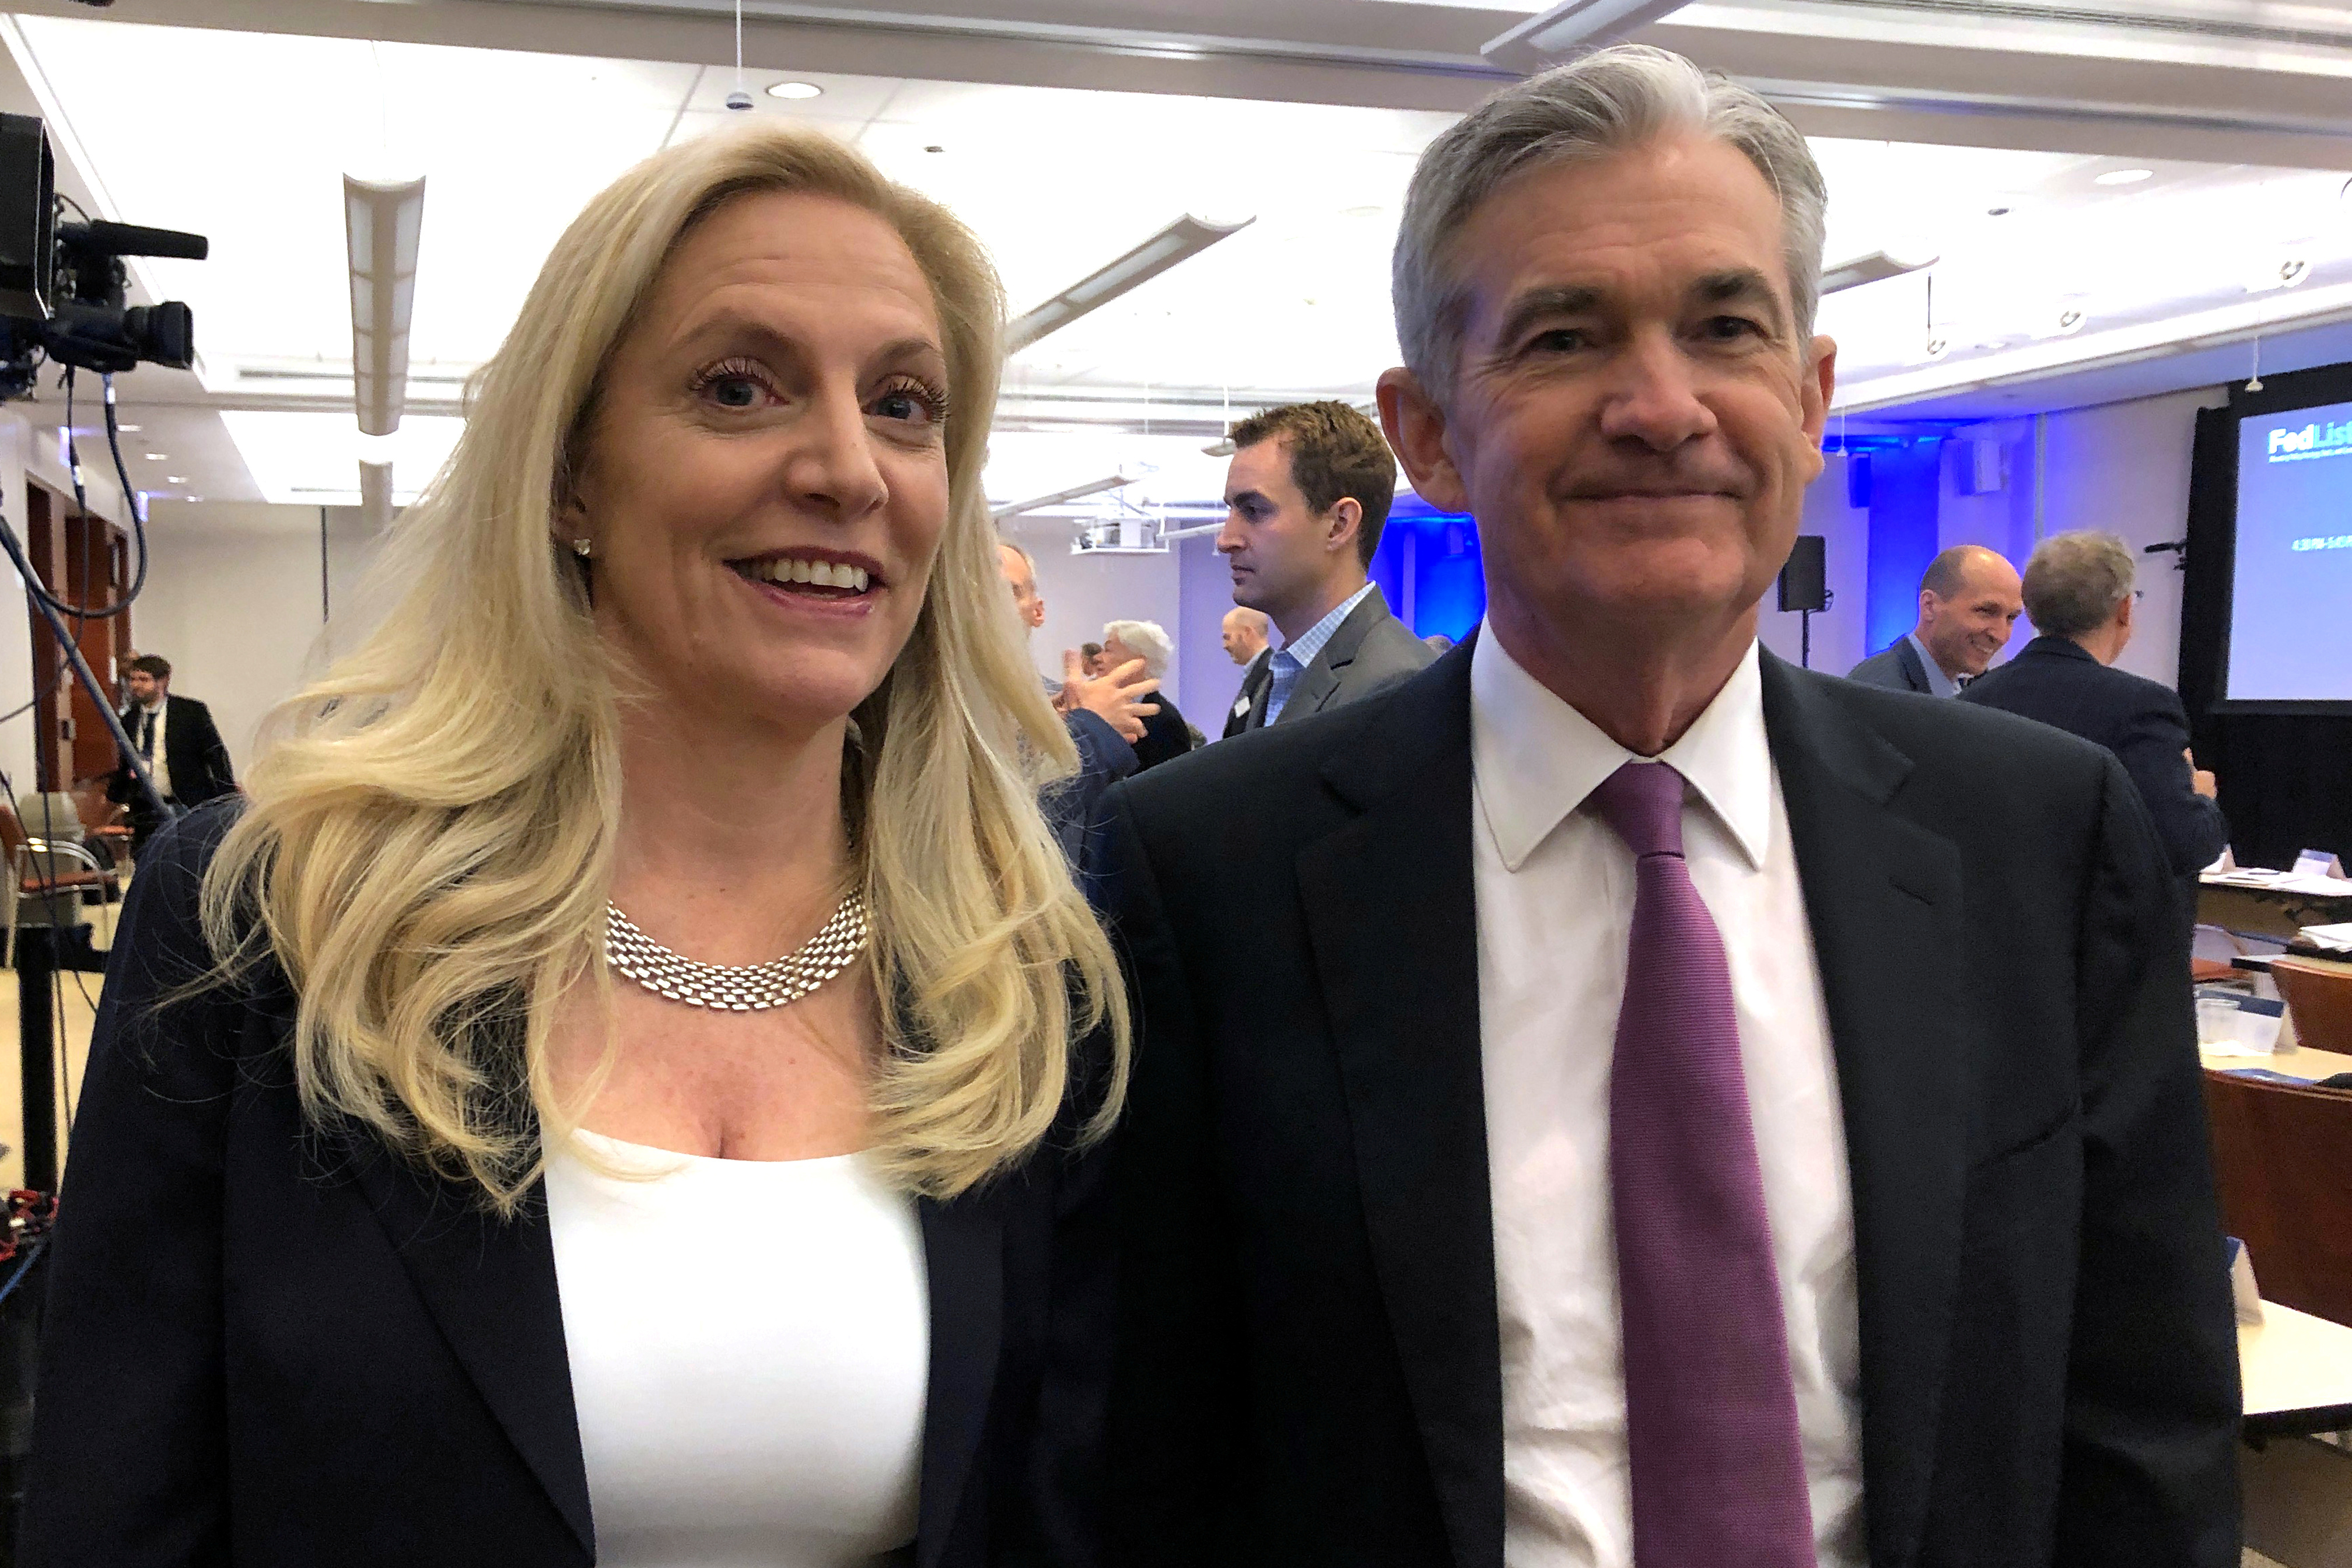 Federal Reserve Chairman Jerome Powell poses for photos with Fed Governor Lael Brainard (L) at the Federal Reserve Bank of Chicago, in Chicago, Illinois, U.S., June 4, 2019. REUTERS/Ann Saphir